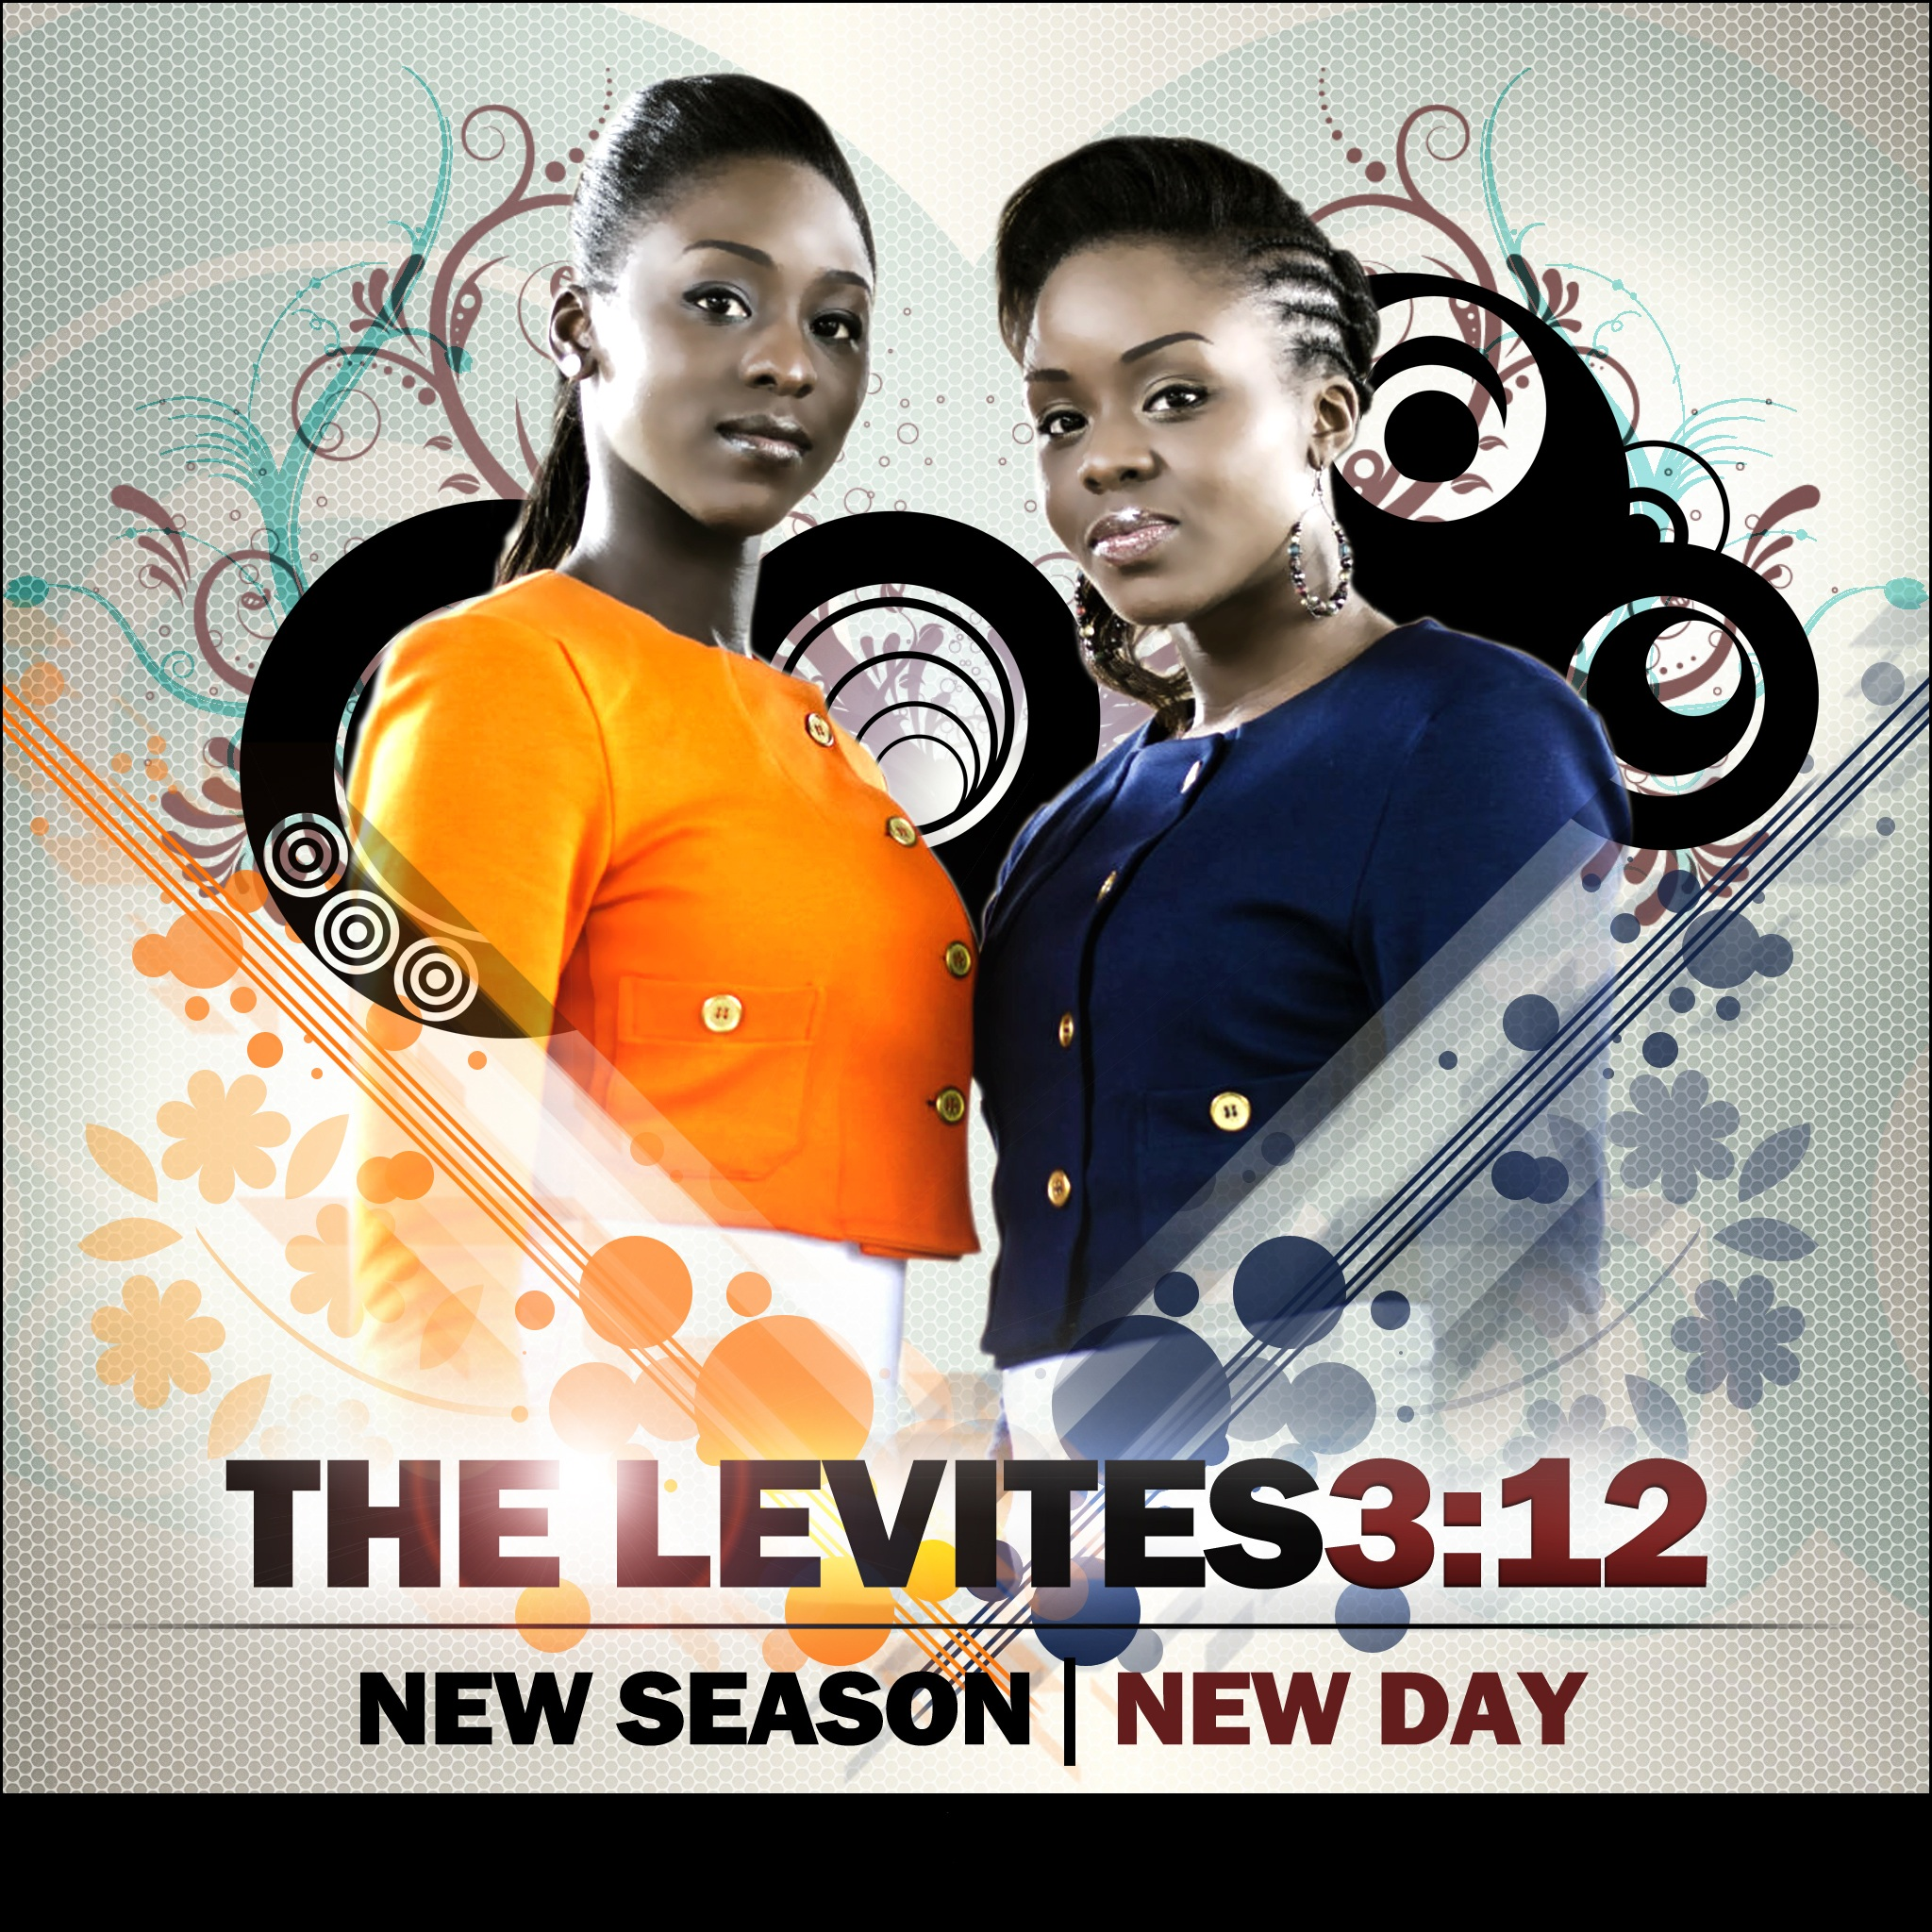 The Levites 3:12 Single Design